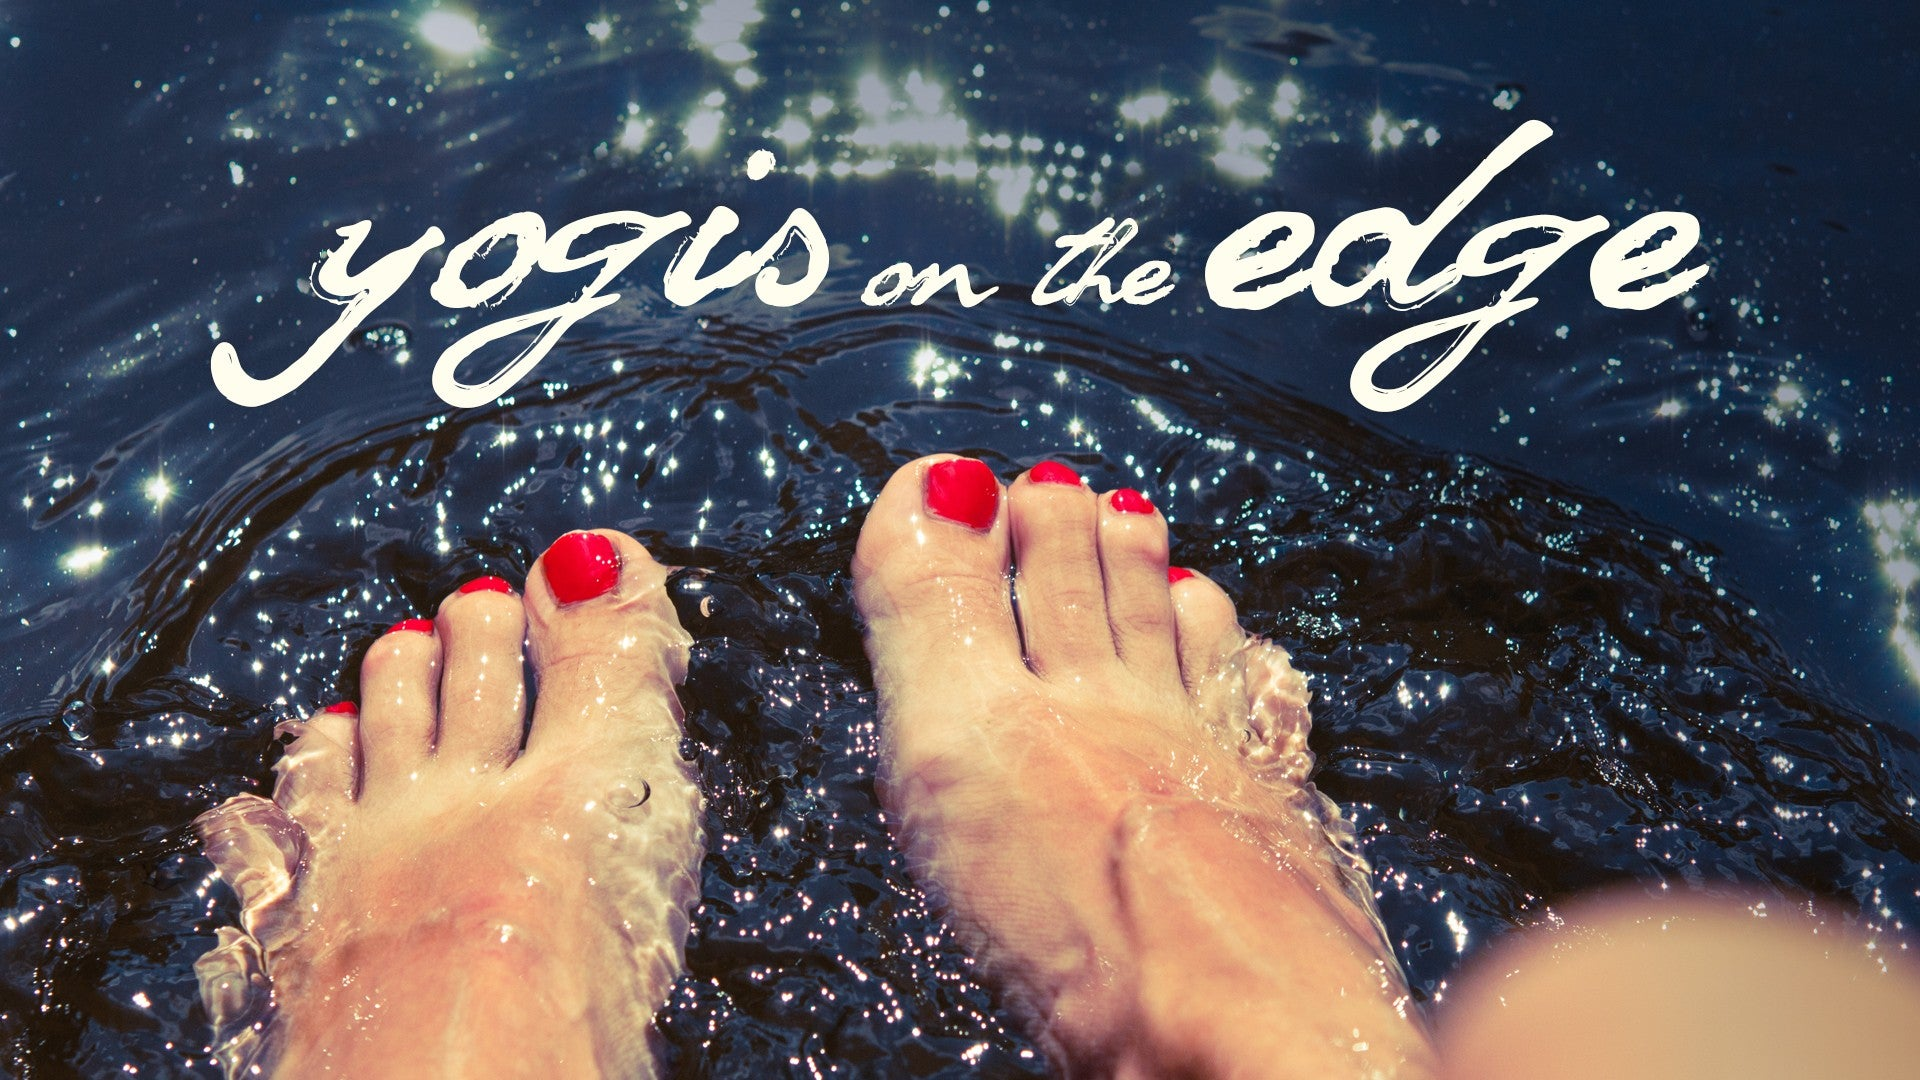 Yogis on the Edge Artwork